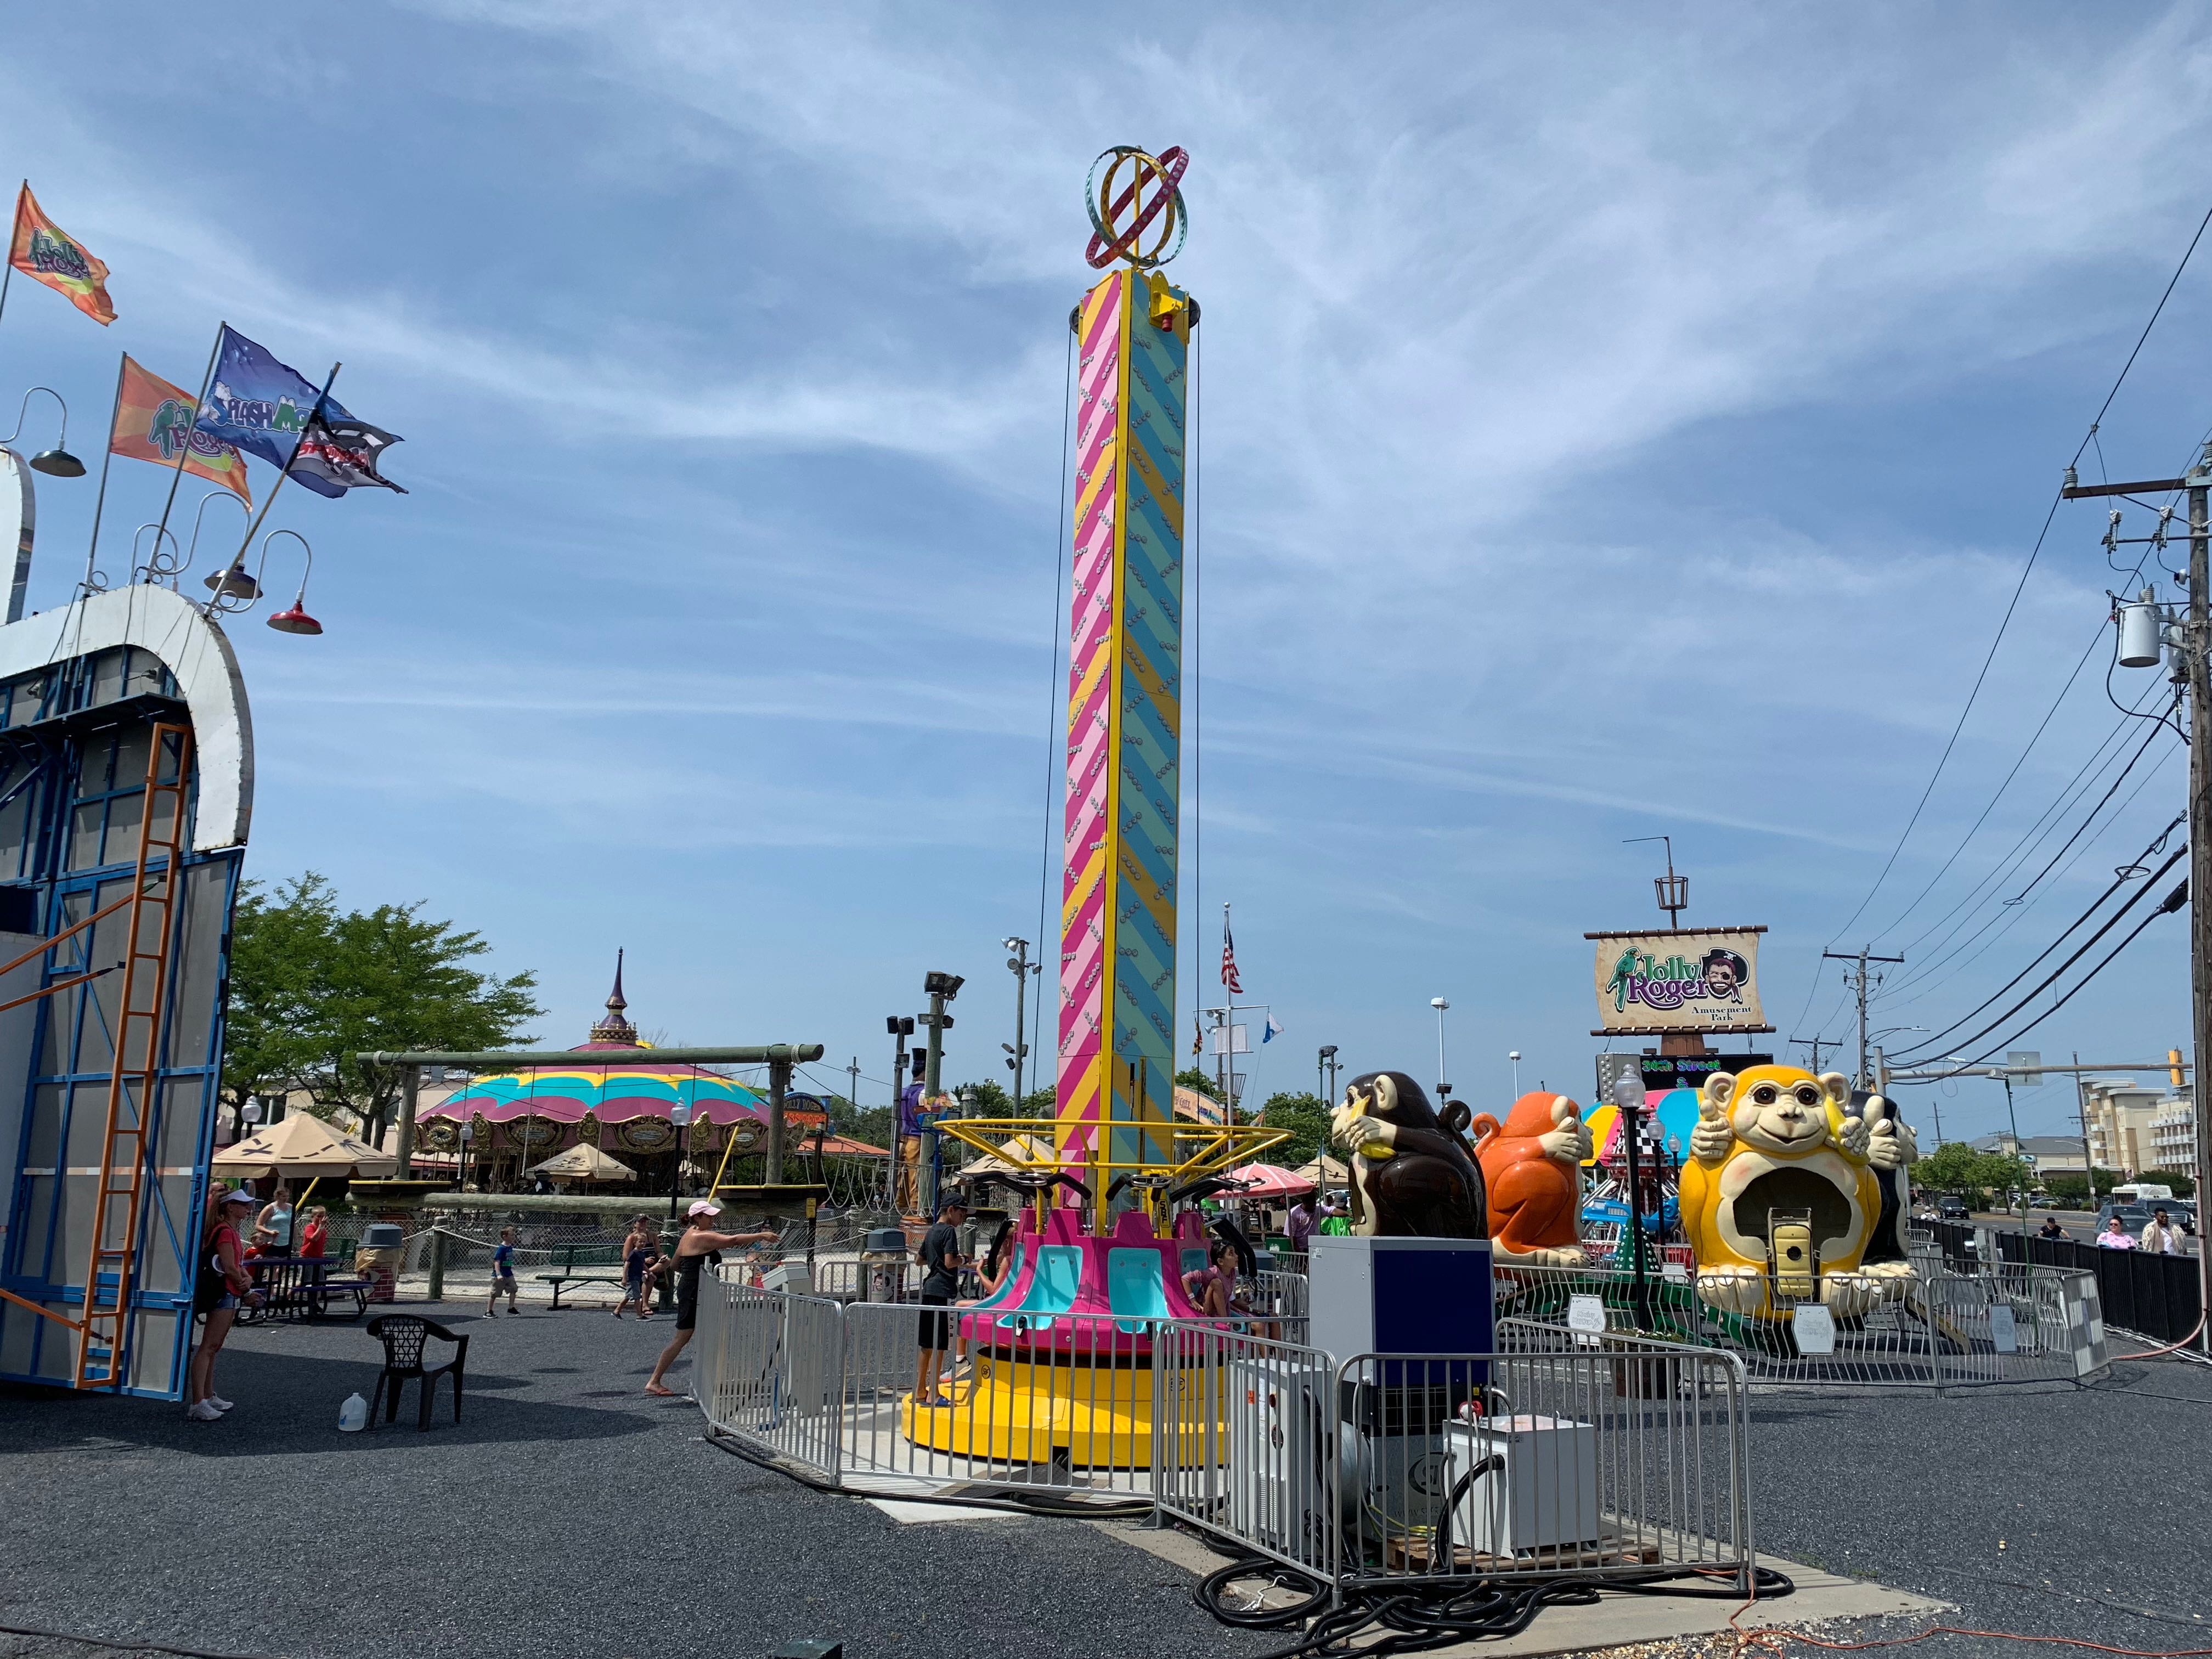 Rides at 30th St.